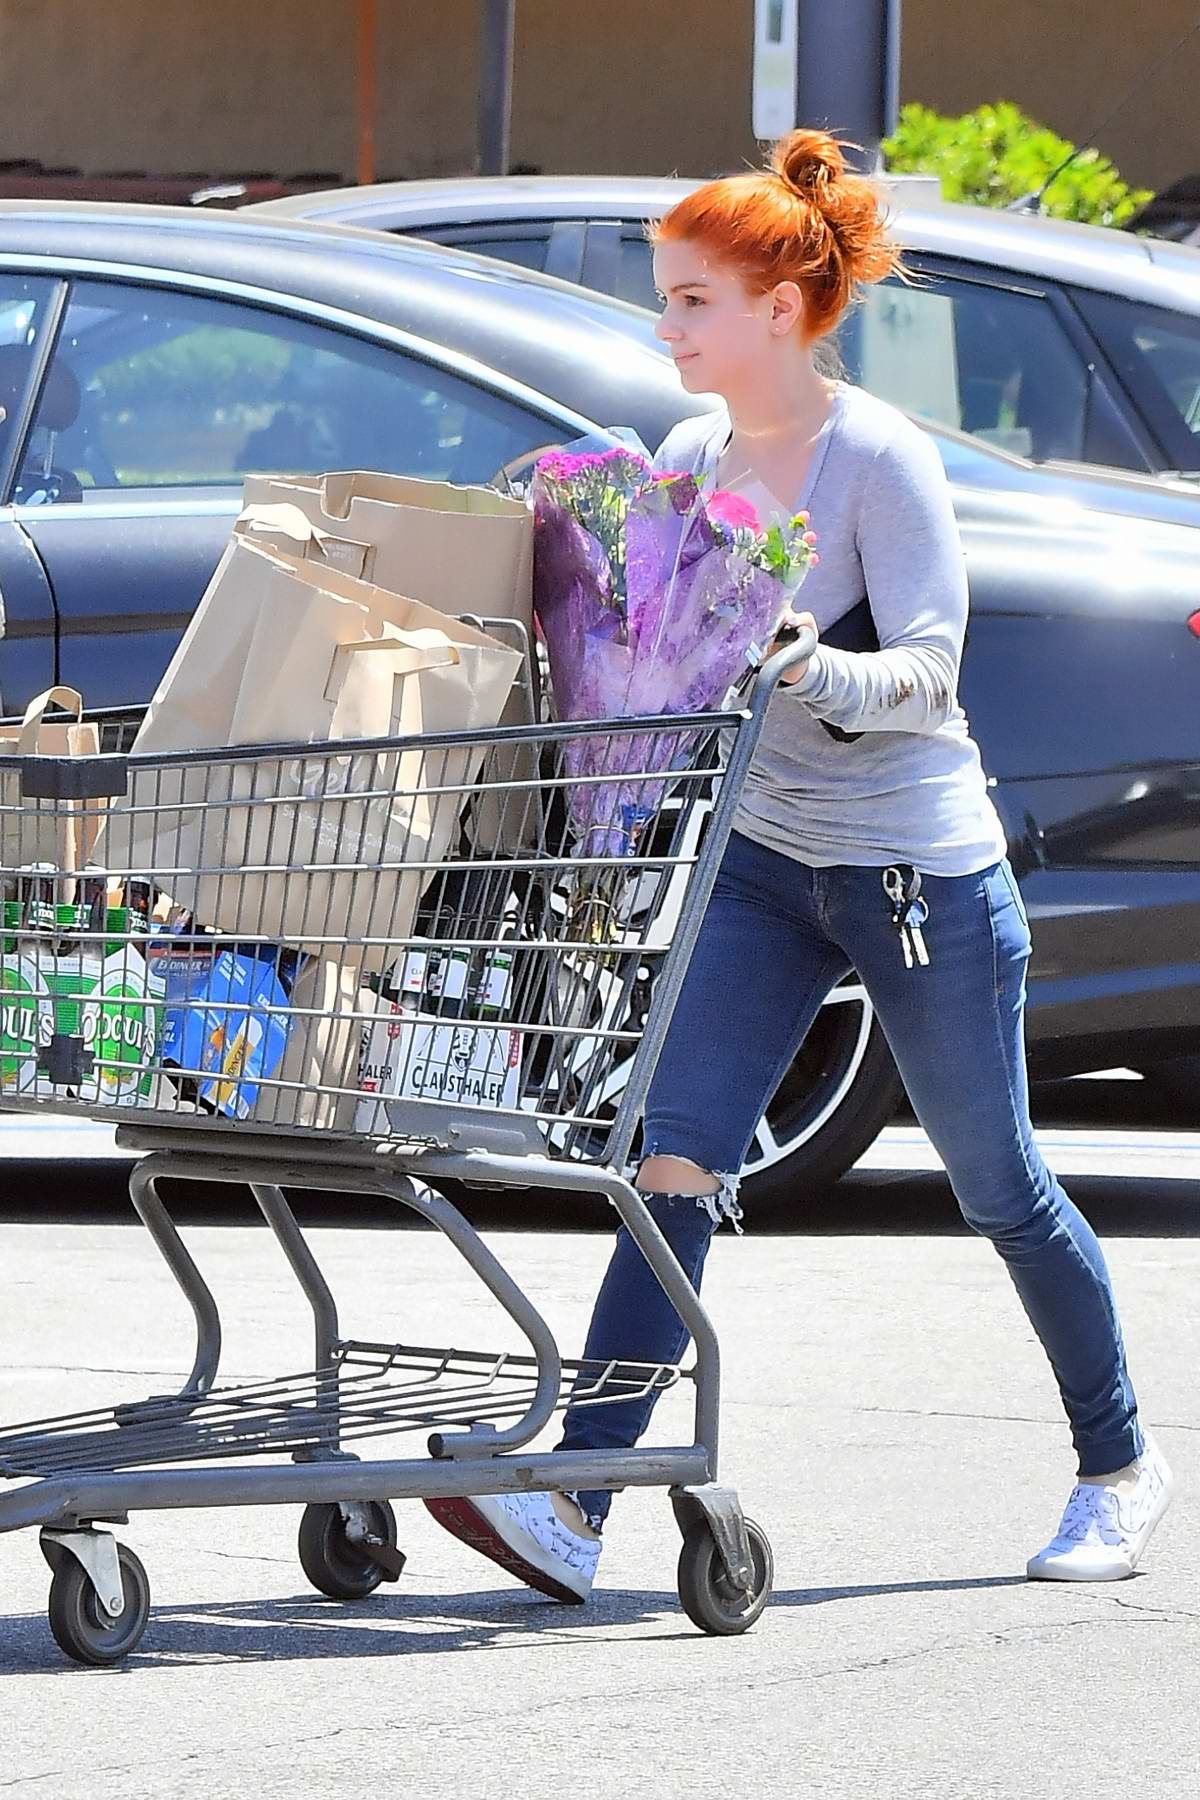 Ariel Winter shops for some groceries, flowers and pack of beers at Gelson's in Studio City, California